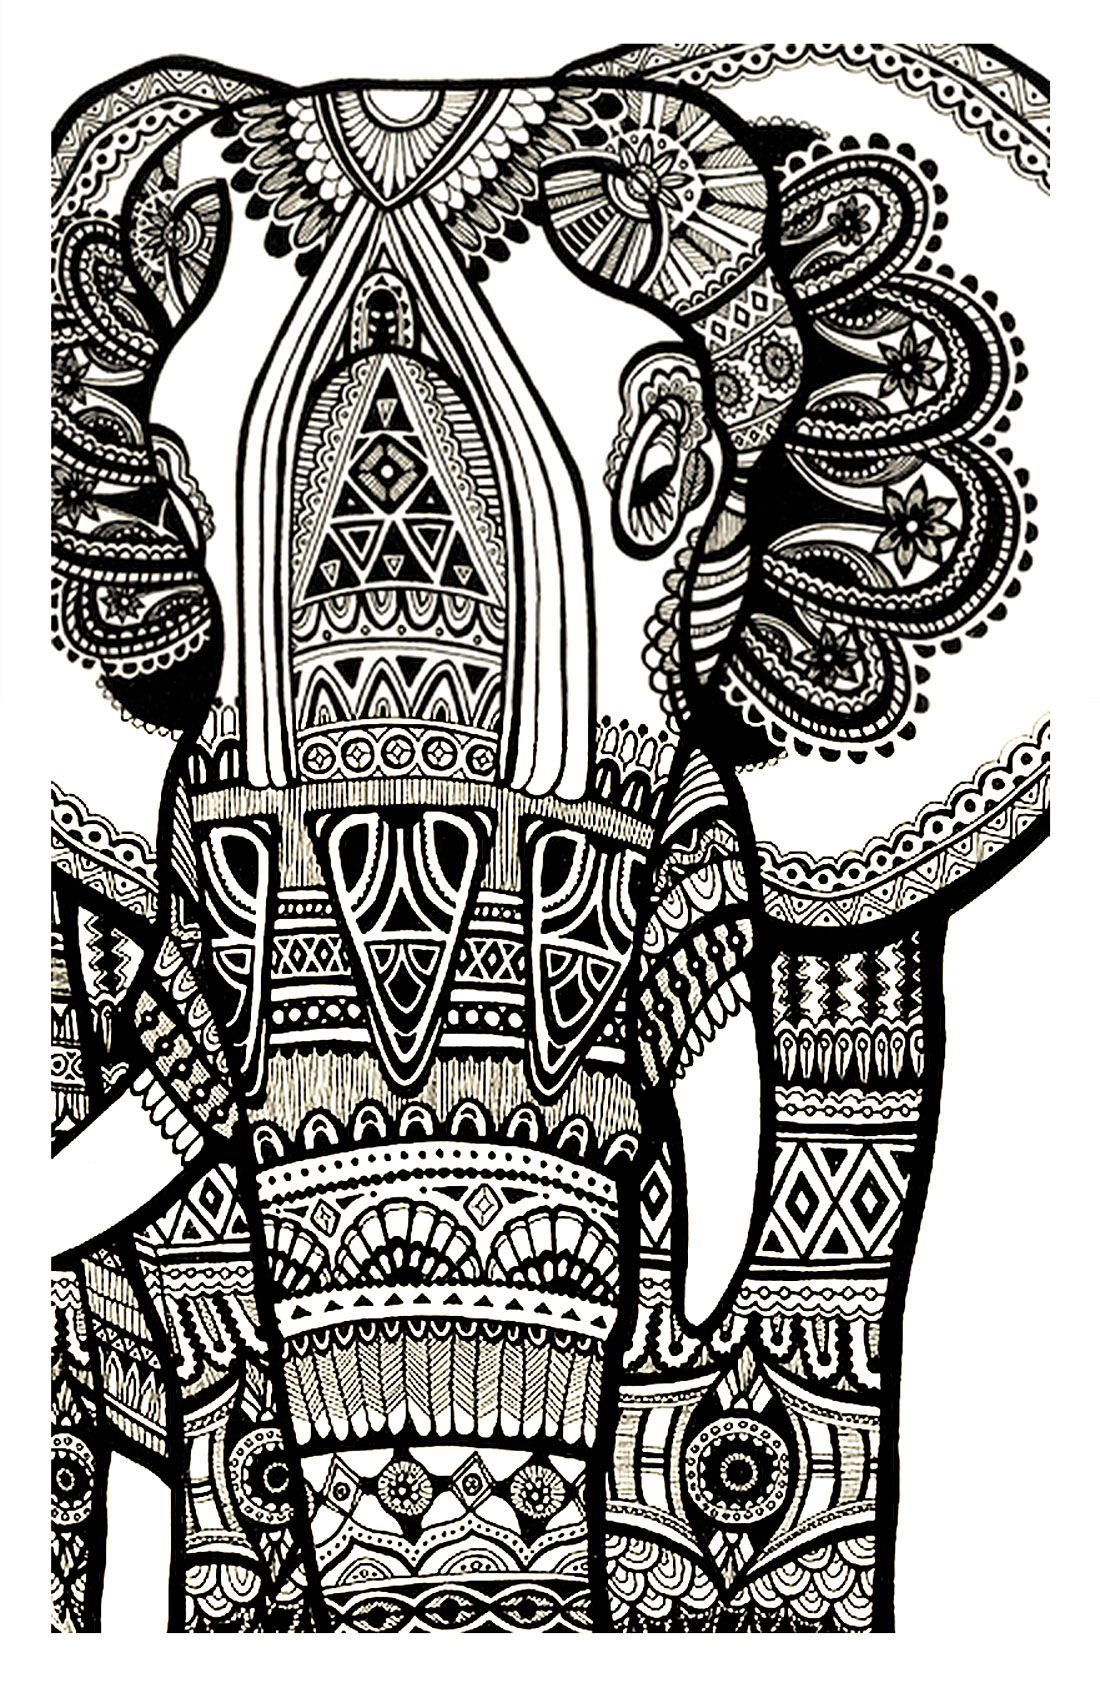 To print this free coloring page coloringelephantte